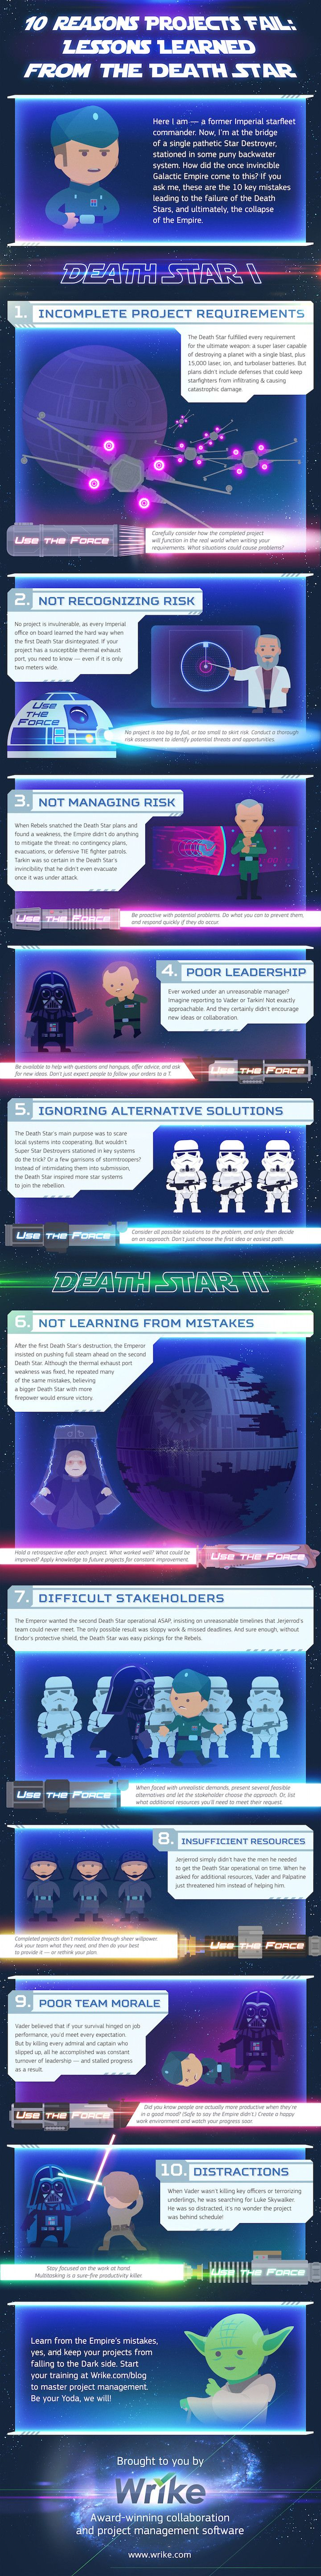 10 Reasons Project Failed: Lessons Learned From The Death Star